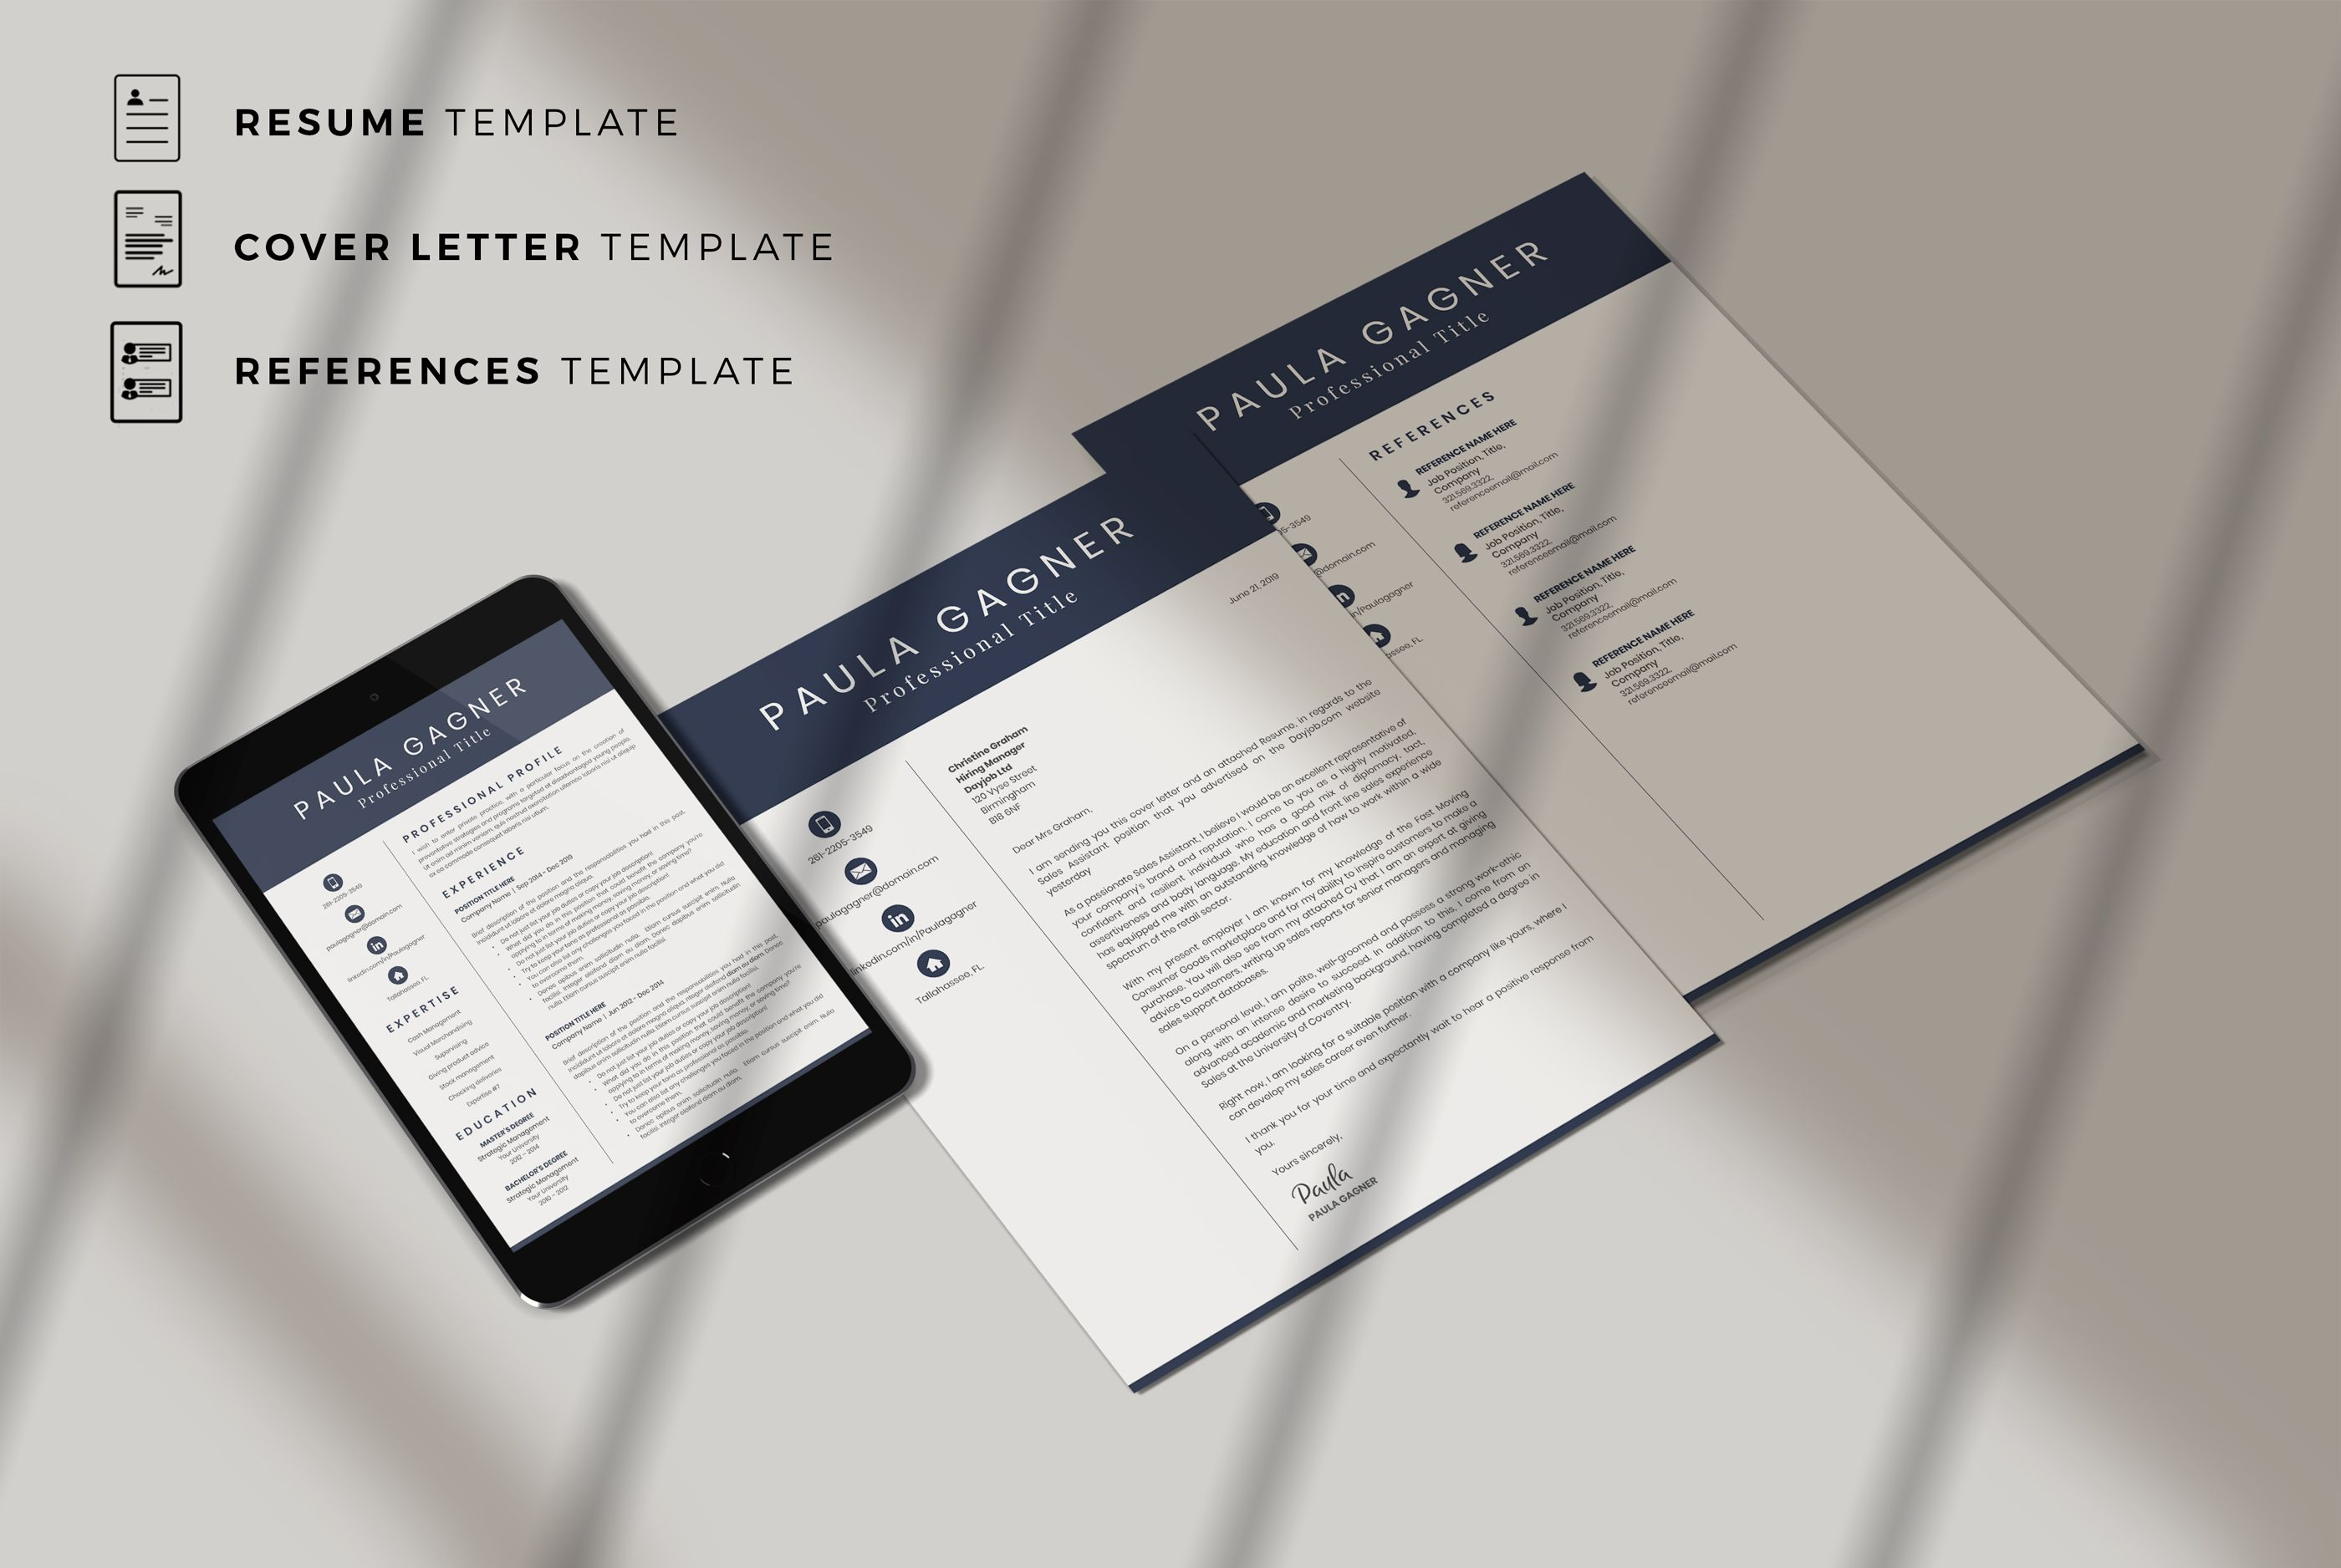 27+ Resume assistant word mac ideas in 2021